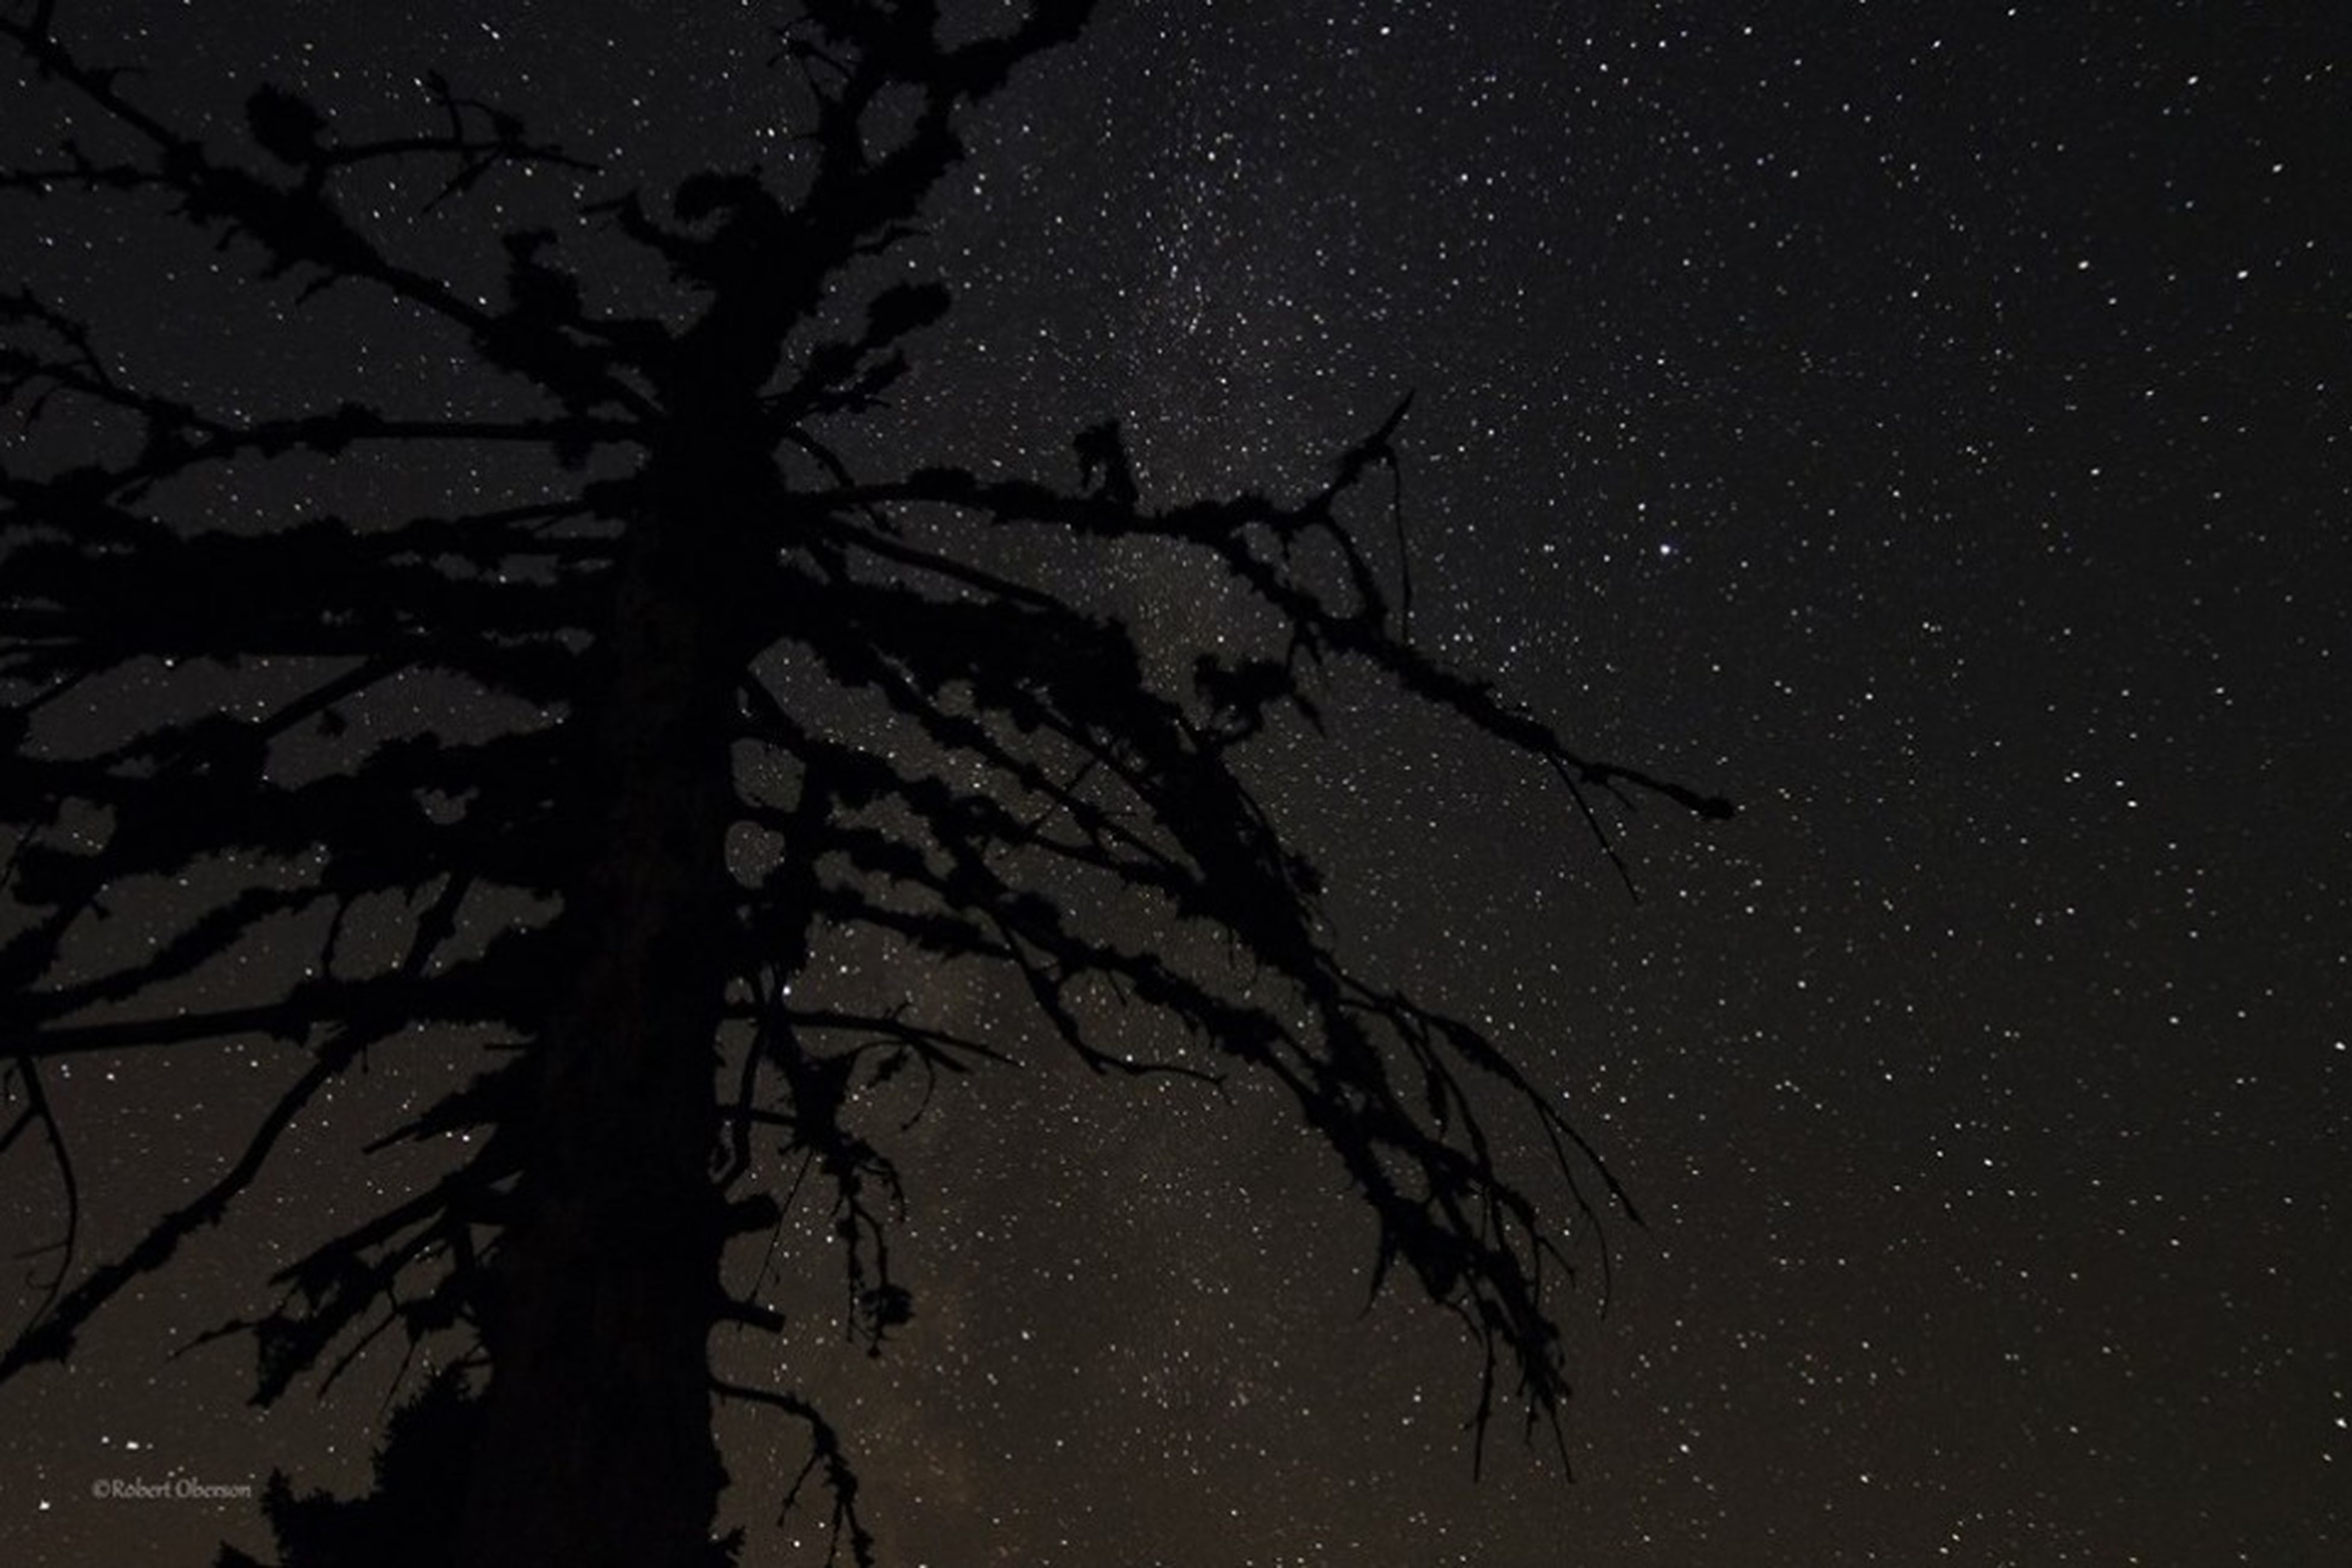 night, low angle view, silhouette, branch, tree, bare tree, sky, tranquility, nature, dark, beauty in nature, star - space, scenics, dusk, tranquil scene, moon, outdoors, astronomy, growth, no people